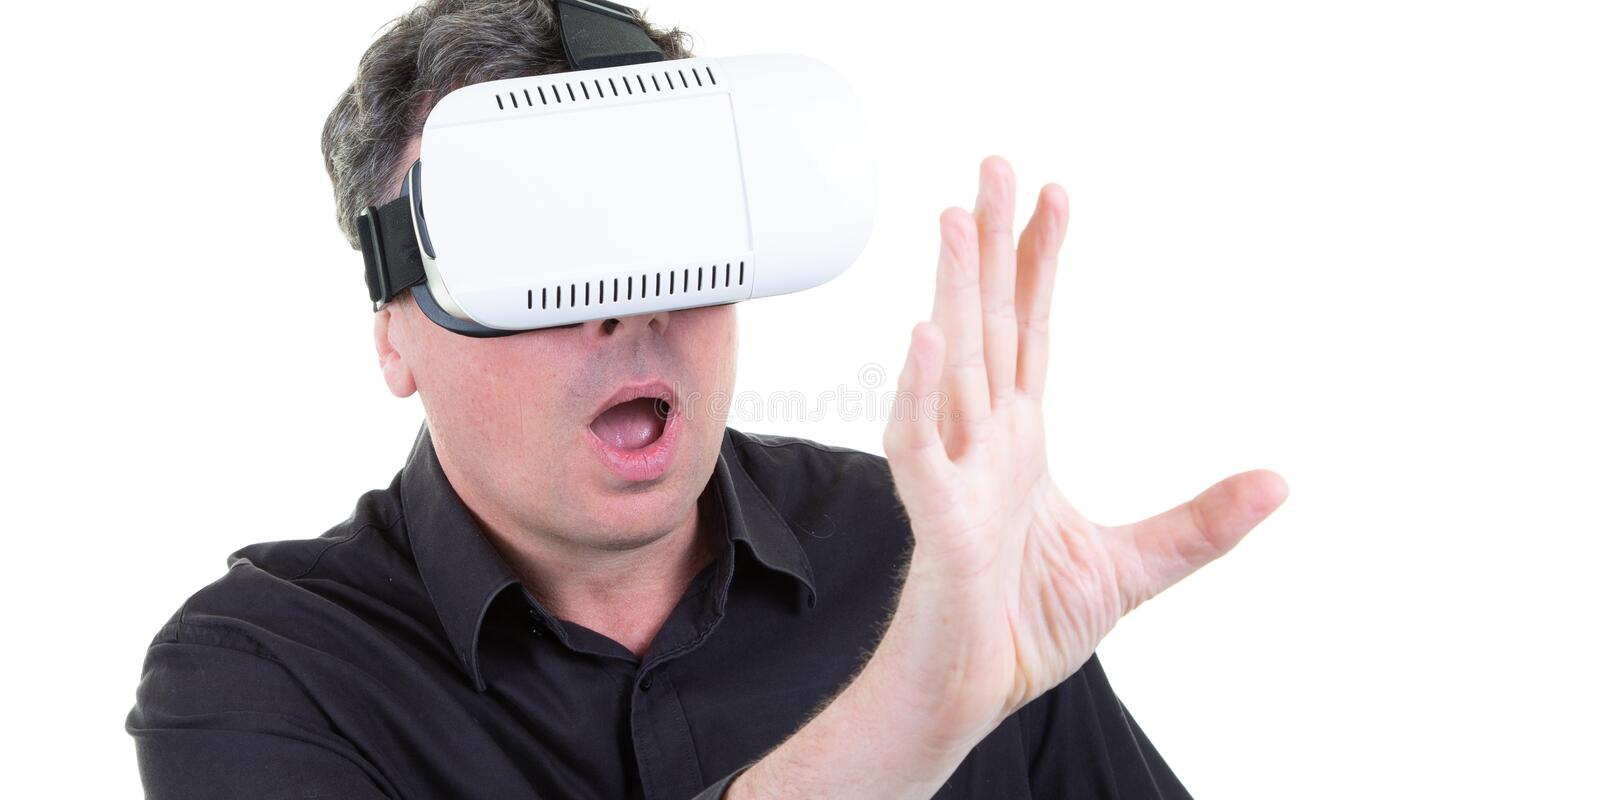 Playful man entertaining himself playing video games using virtual glasses isolated on white background royalty free stock photo